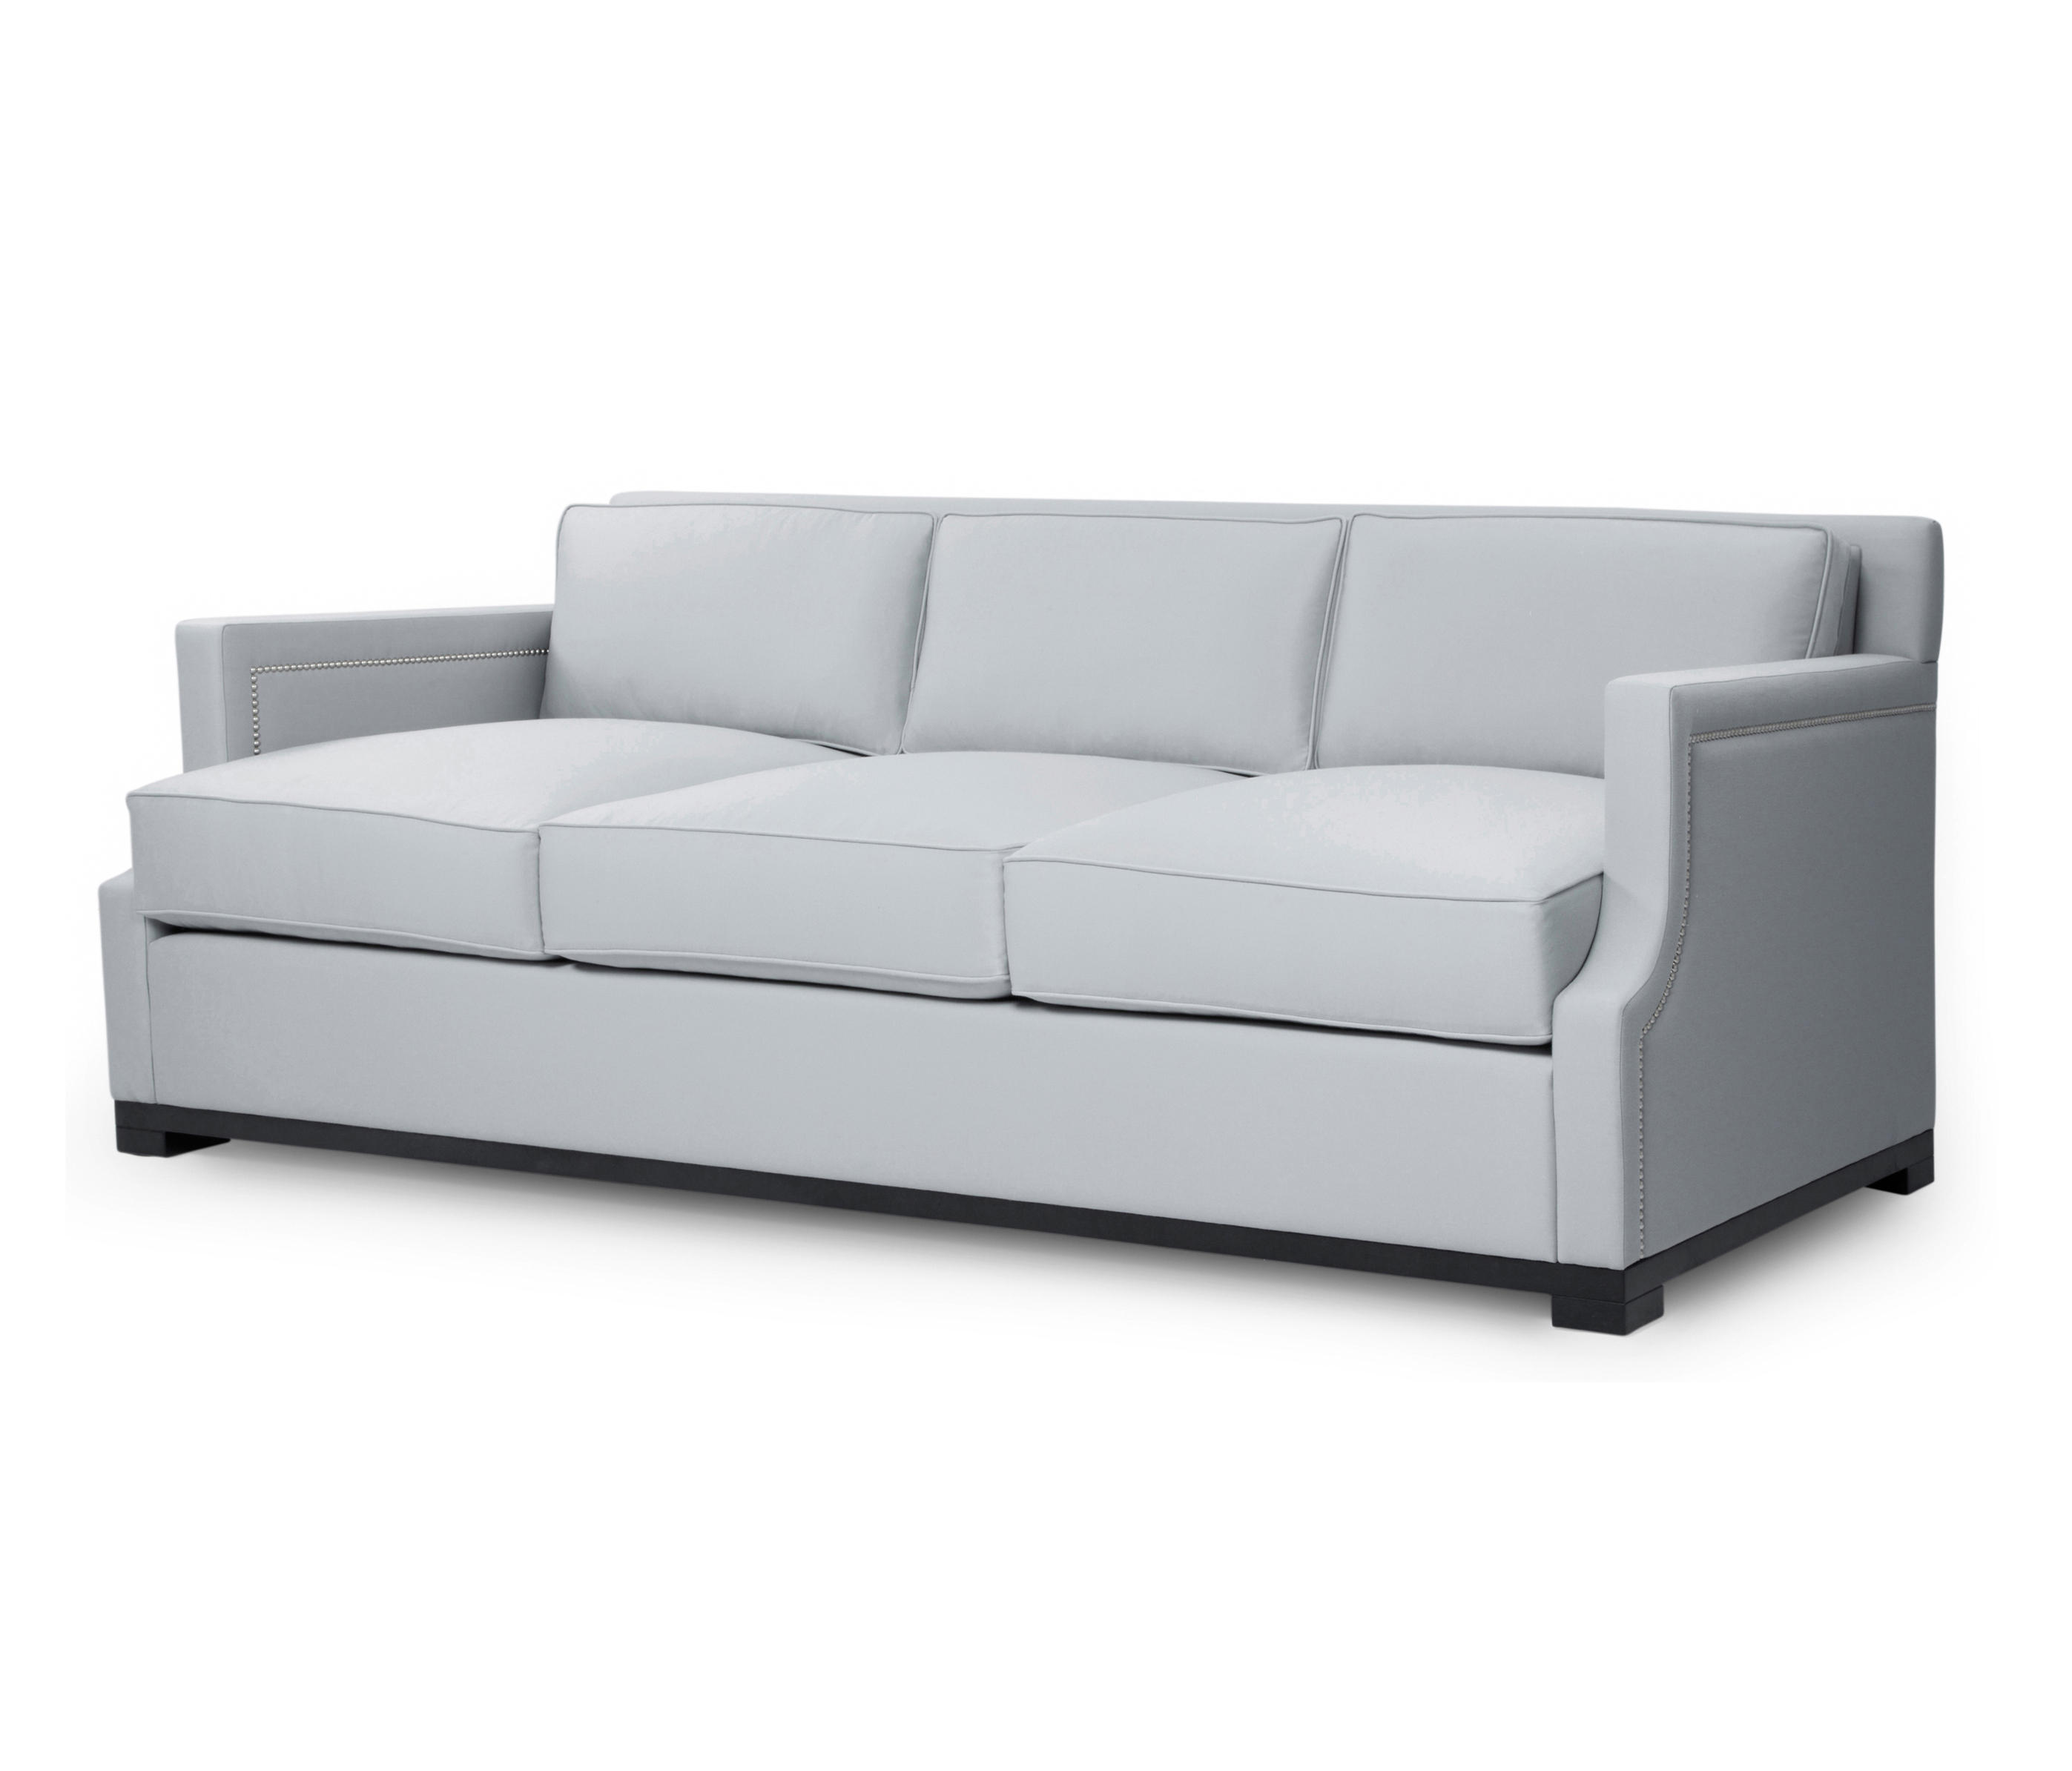 Fine Belvedere Sofa Sofas From The Sofa Chair Company Ltd Unemploymentrelief Wooden Chair Designs For Living Room Unemploymentrelieforg